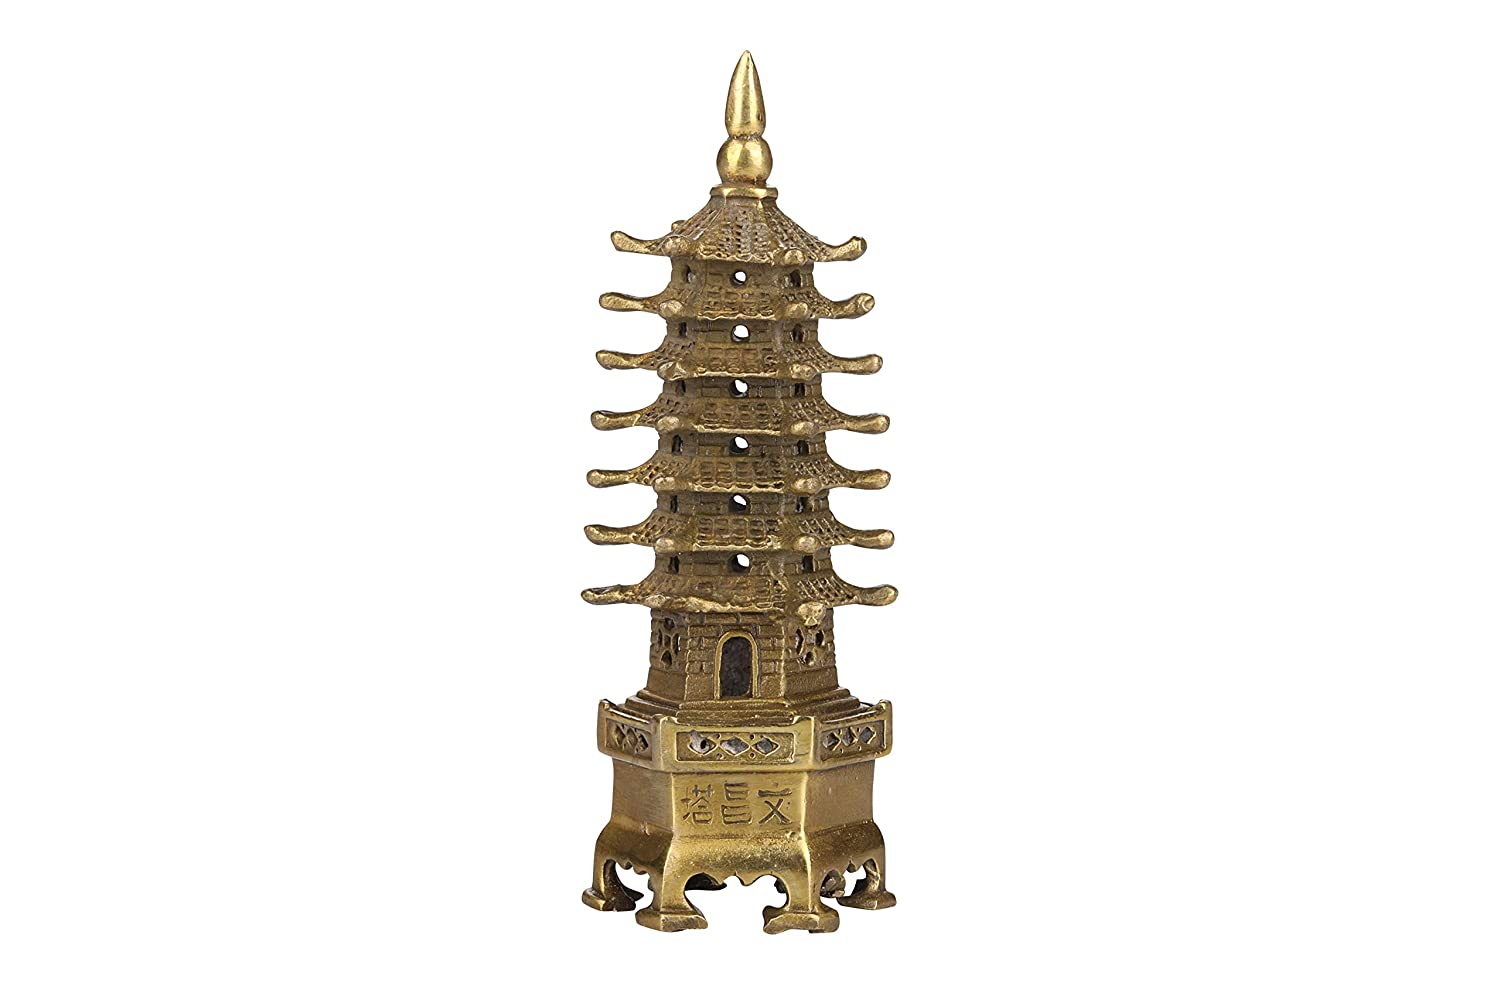 I-MART Wen Chang Pagoda, Feng Shui Brass Pagoda Statue, Chinese Fengshui Decor Enhancer for Protection and Wealth Luck (5.5 Inches)